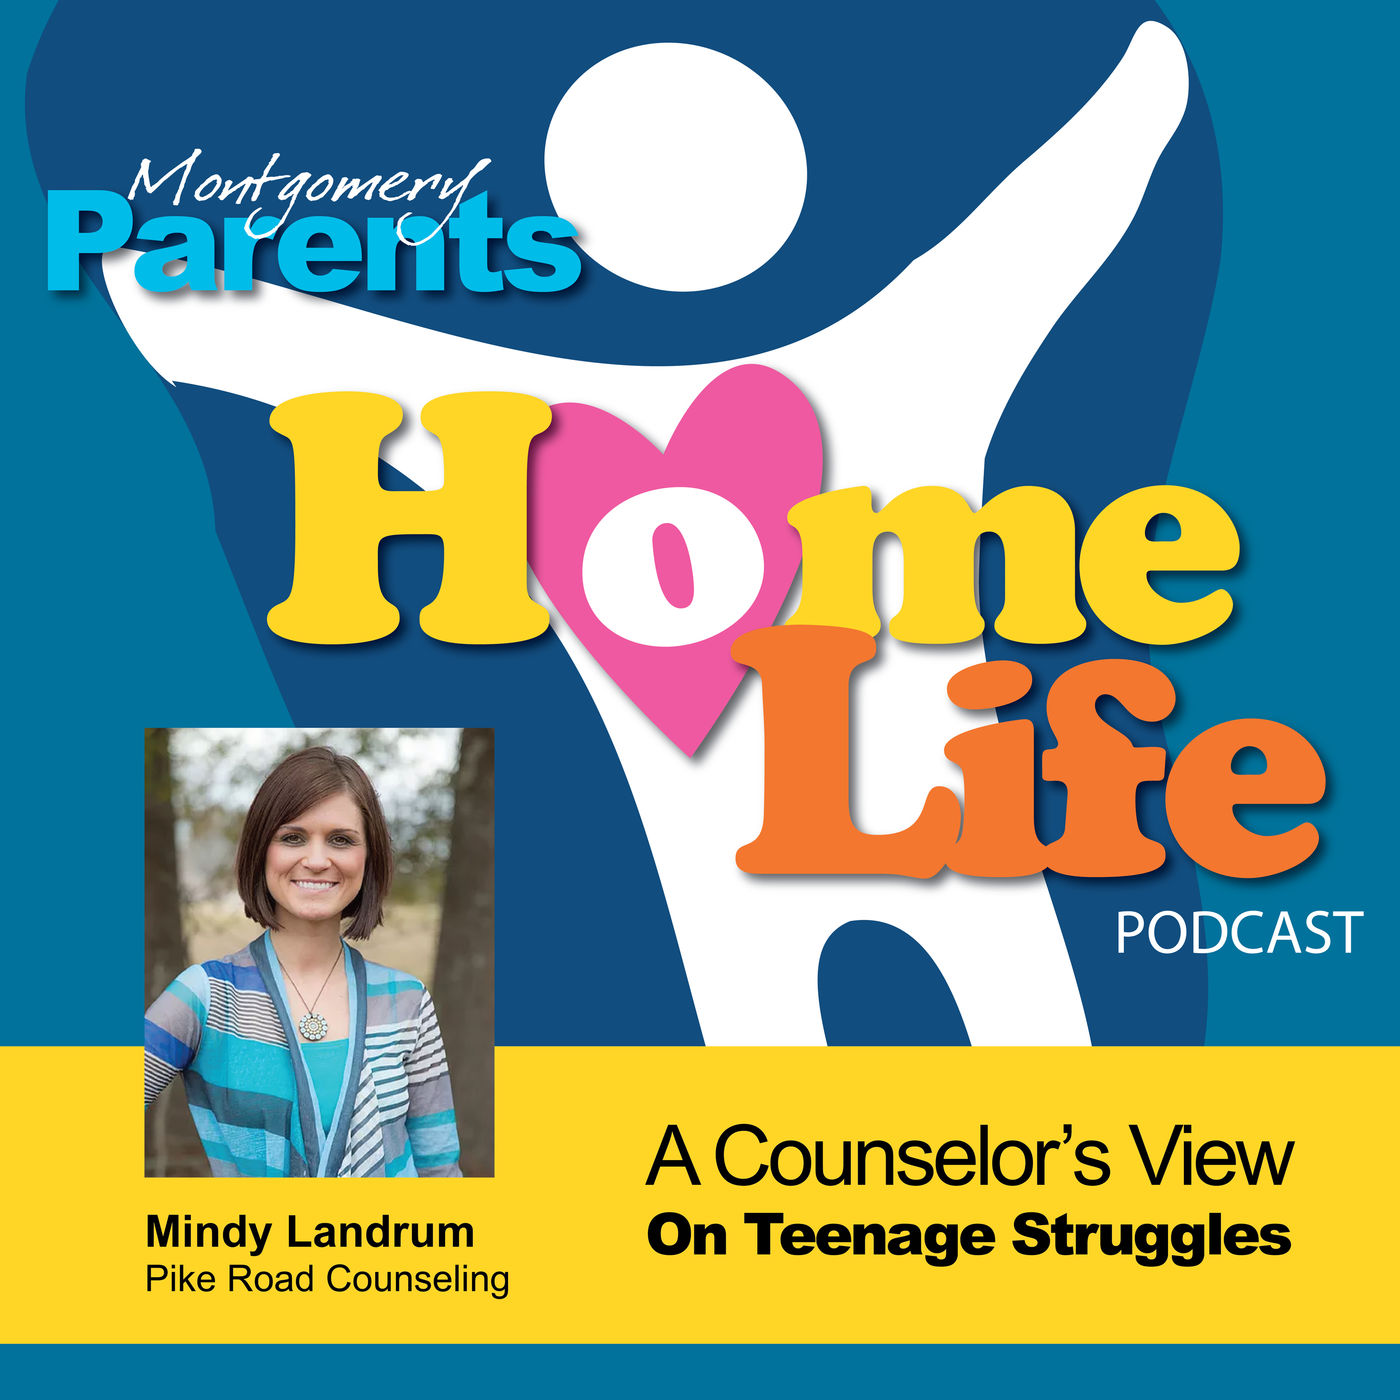 A Counselor's View On Teen Struggles